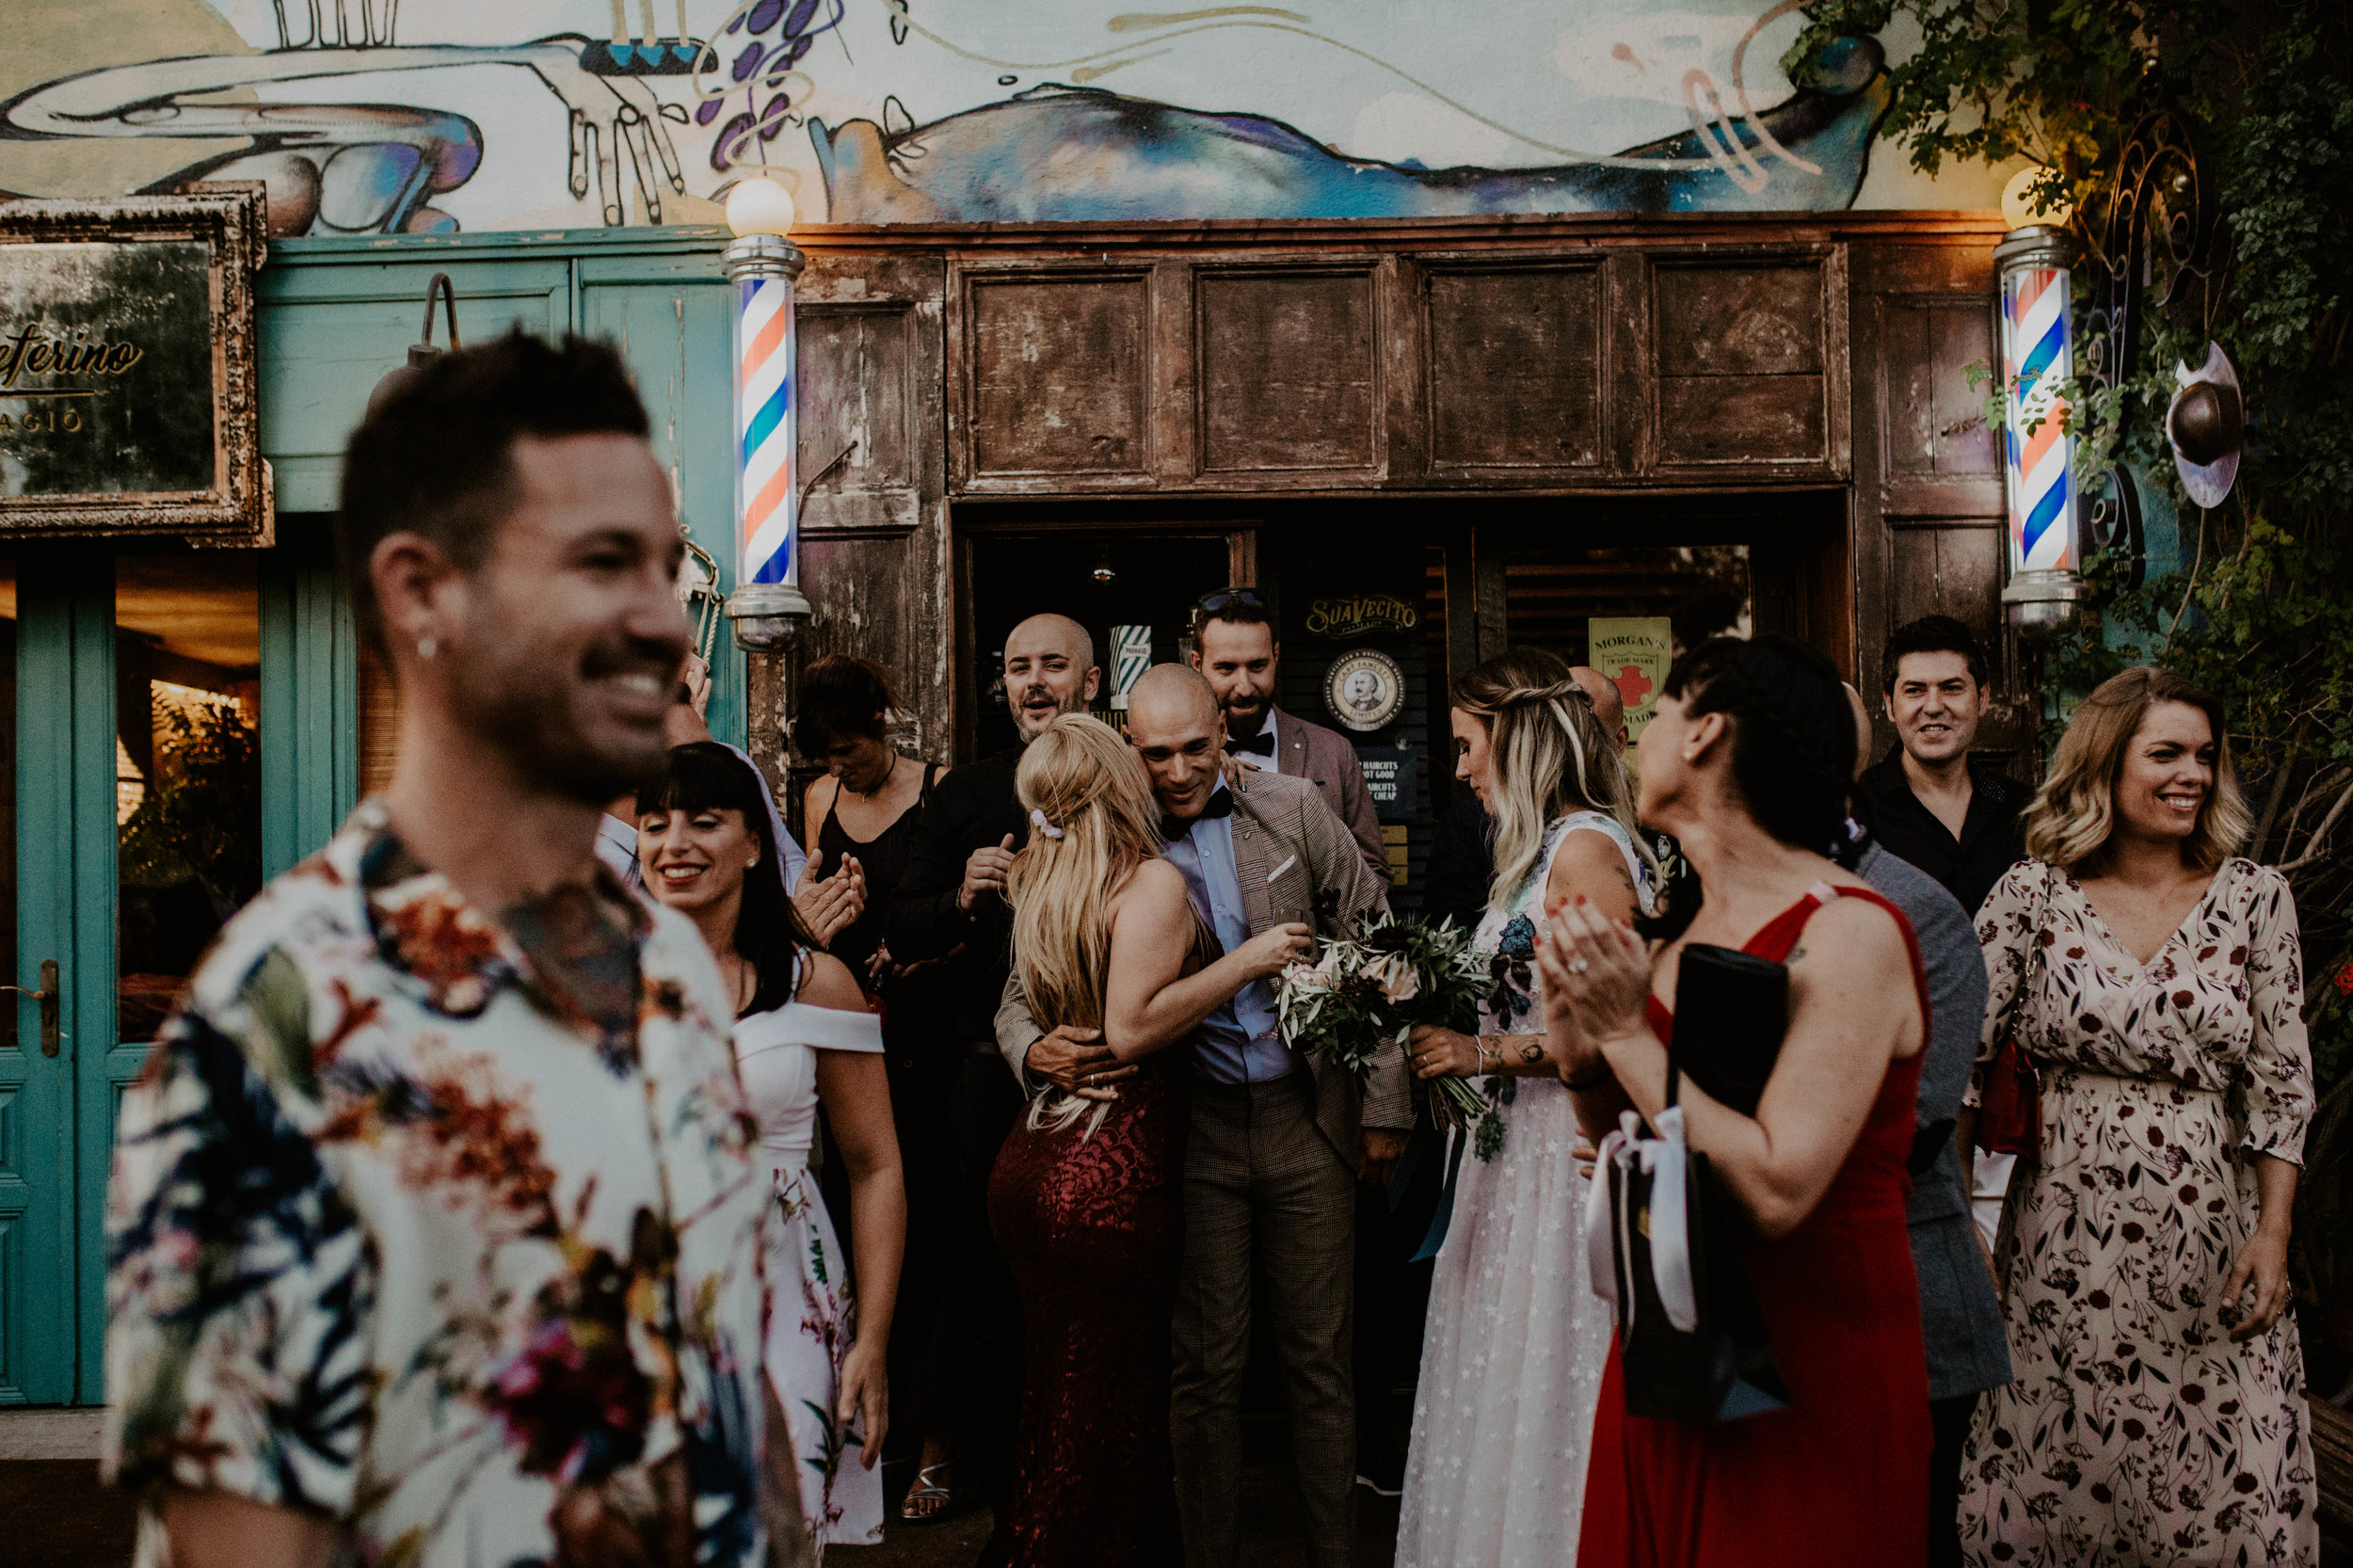 thenortherngirlphotography_bodasindustriales_bodasdiferentes_weddingphotographer_spanishphotographer_spanisgweddingphotographer_happyendings_mercantic_elsiglomercantic_antichrist_love_neon_weddingtattoo_CYNTHIAMANOLO-591.jpg